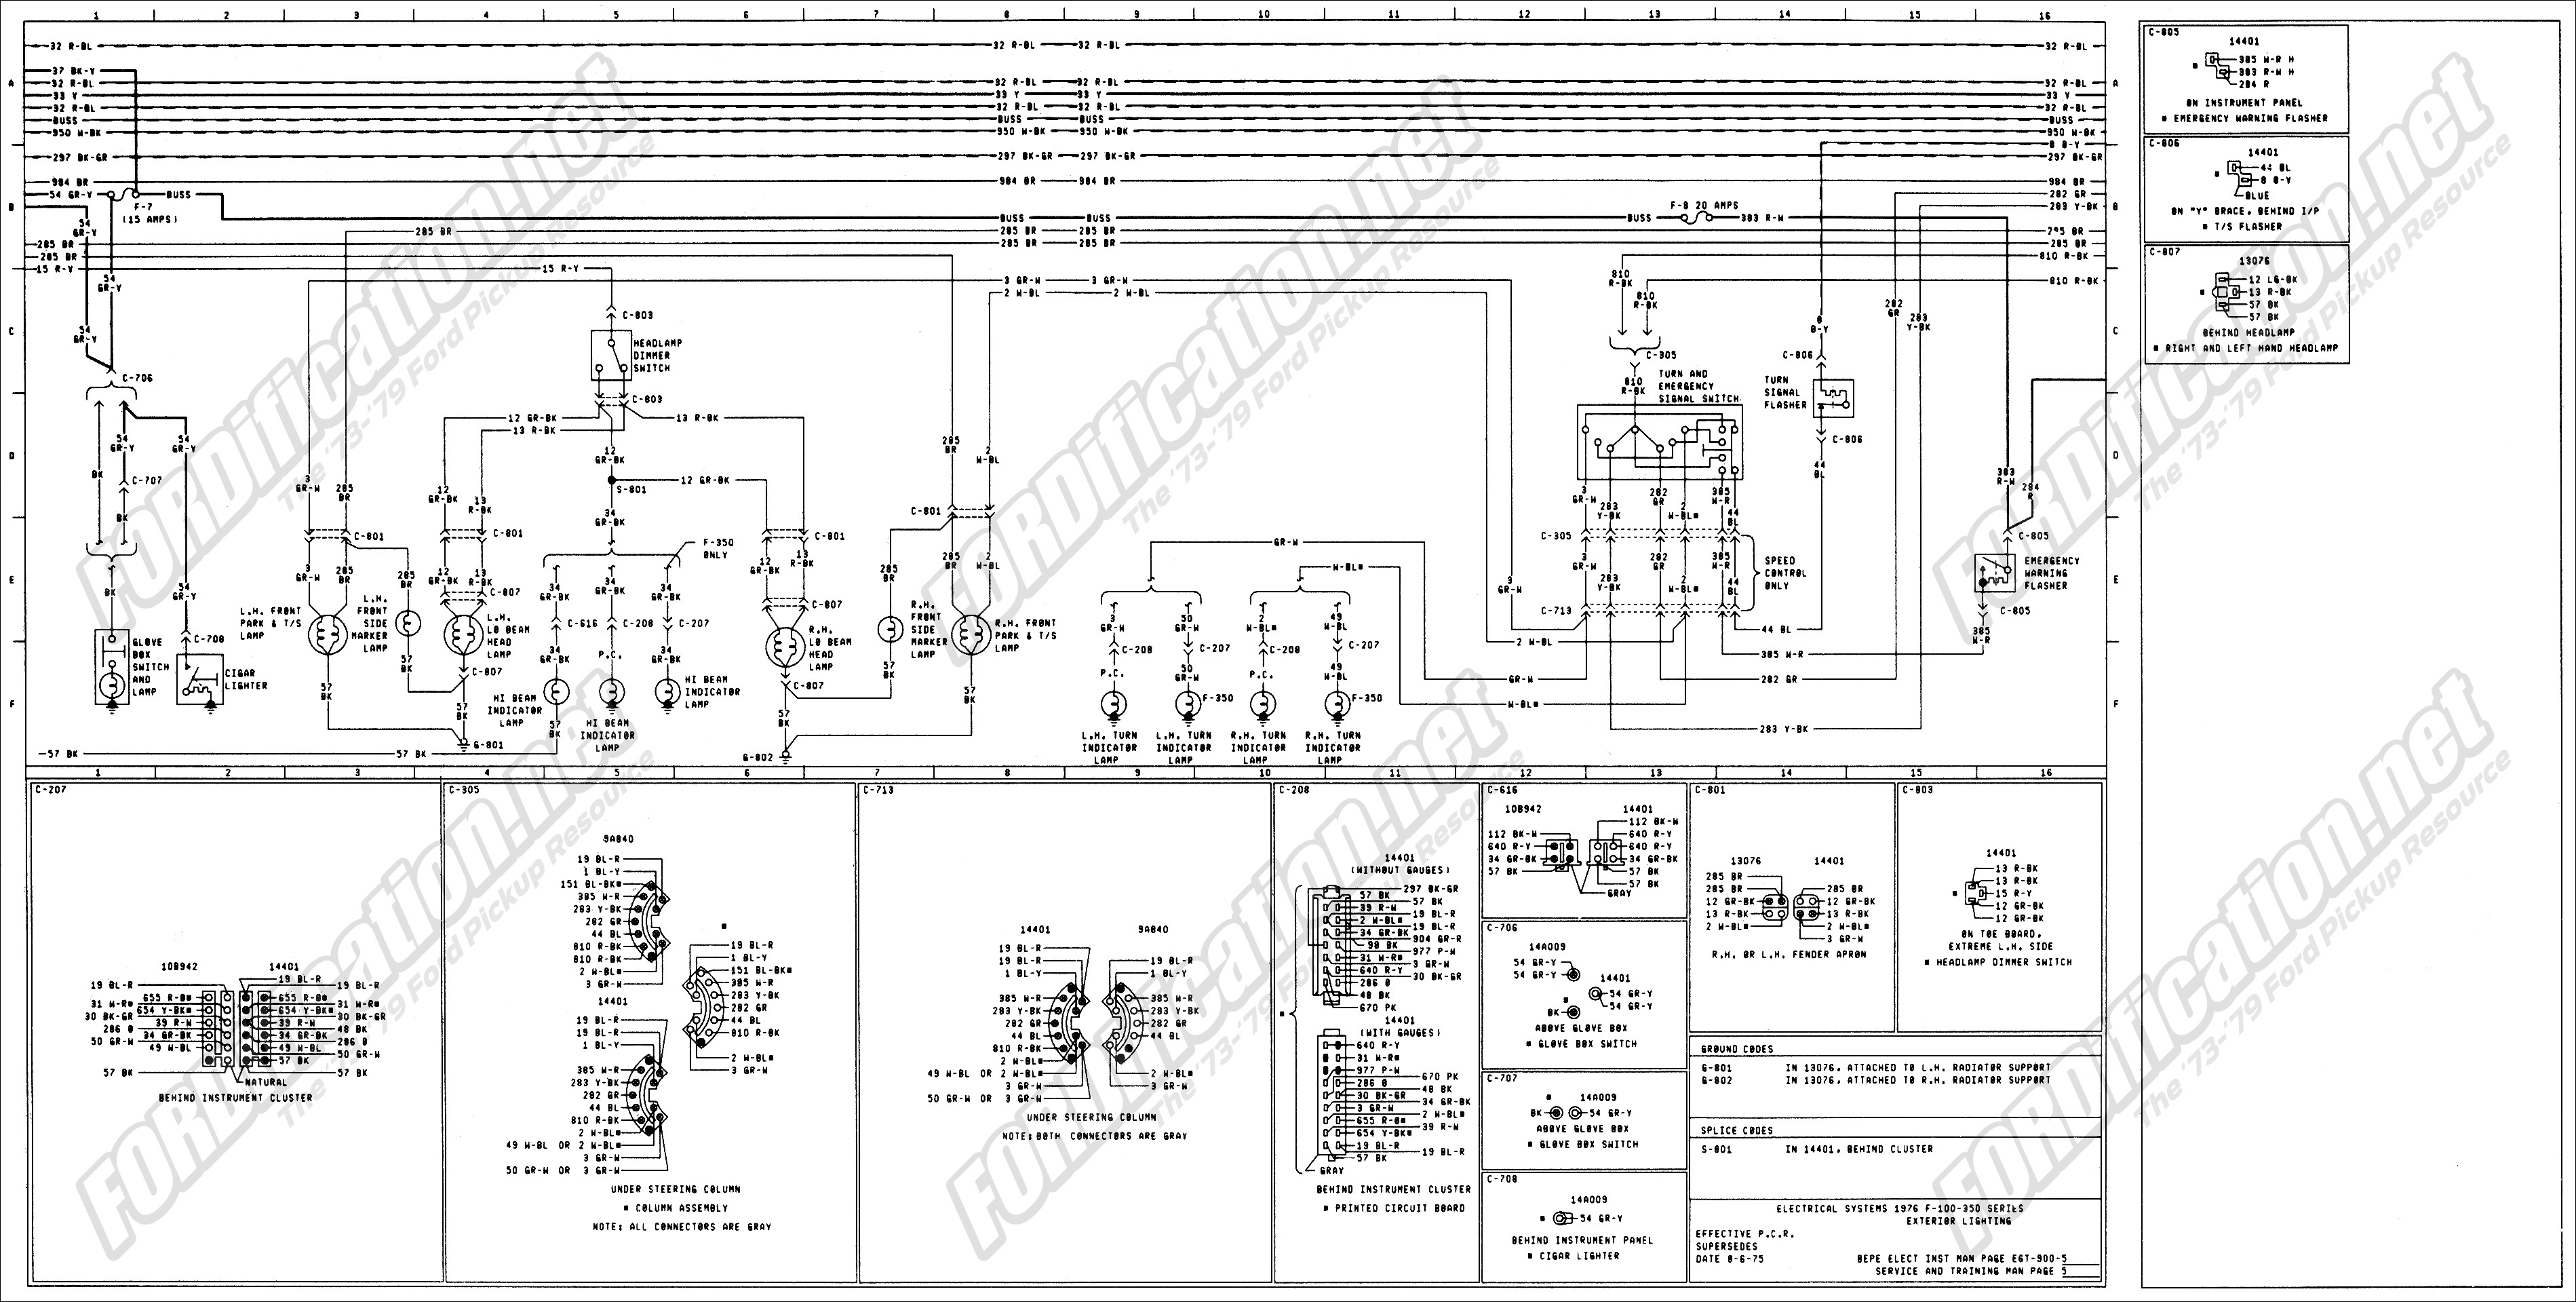 1960 Ford F100 Wiring Diagram | Wiring Diagram F Wiring Schematics on